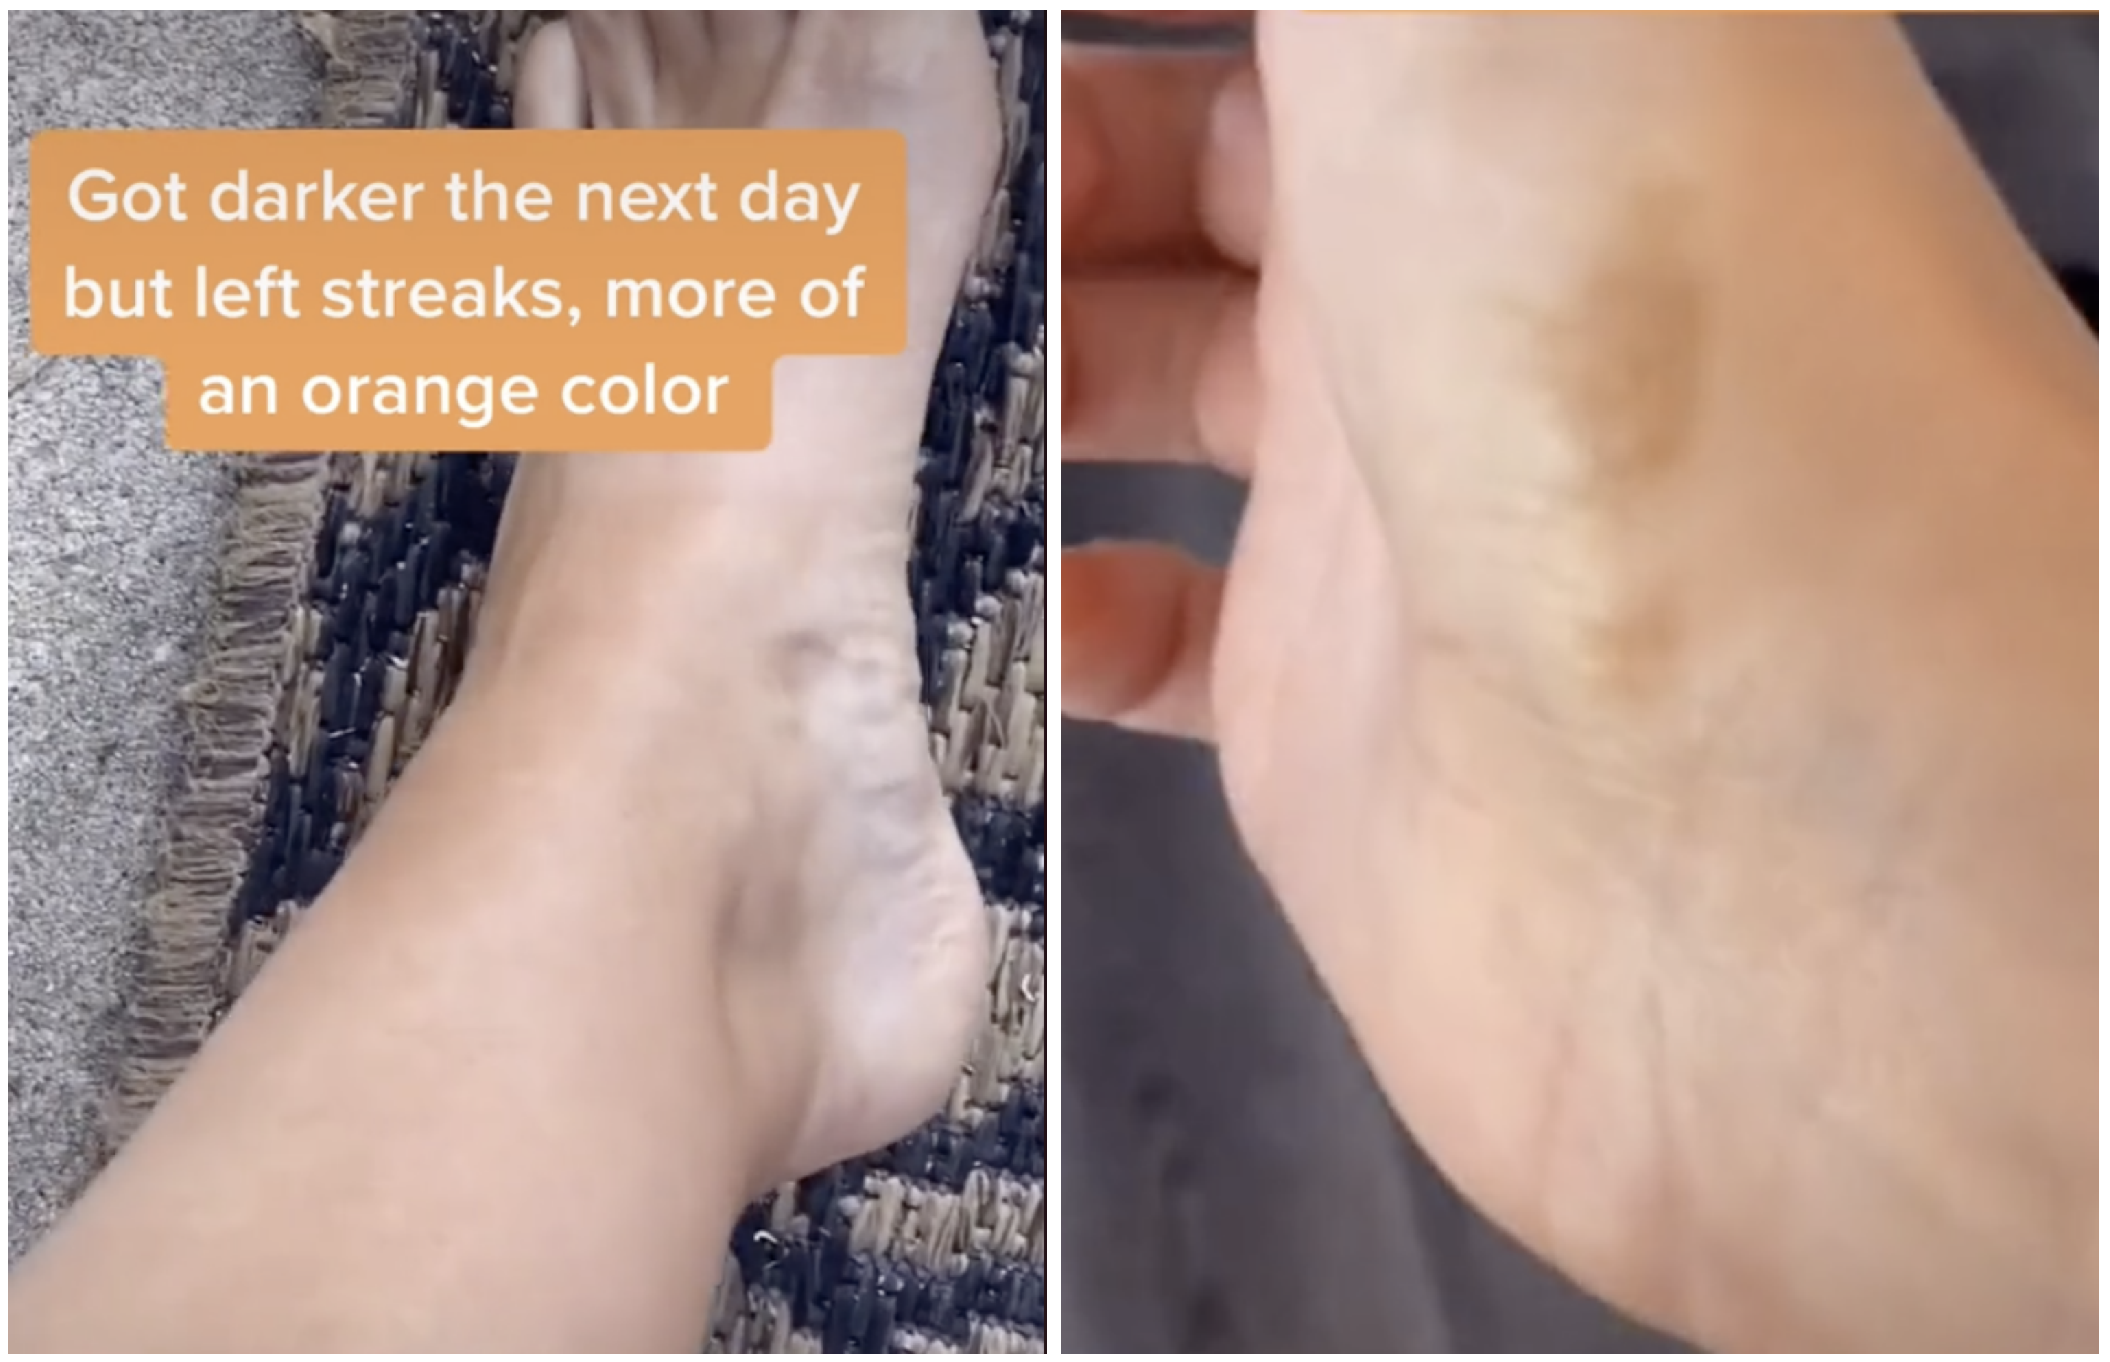 Photo of patchy areas on Krista's hands and feet.